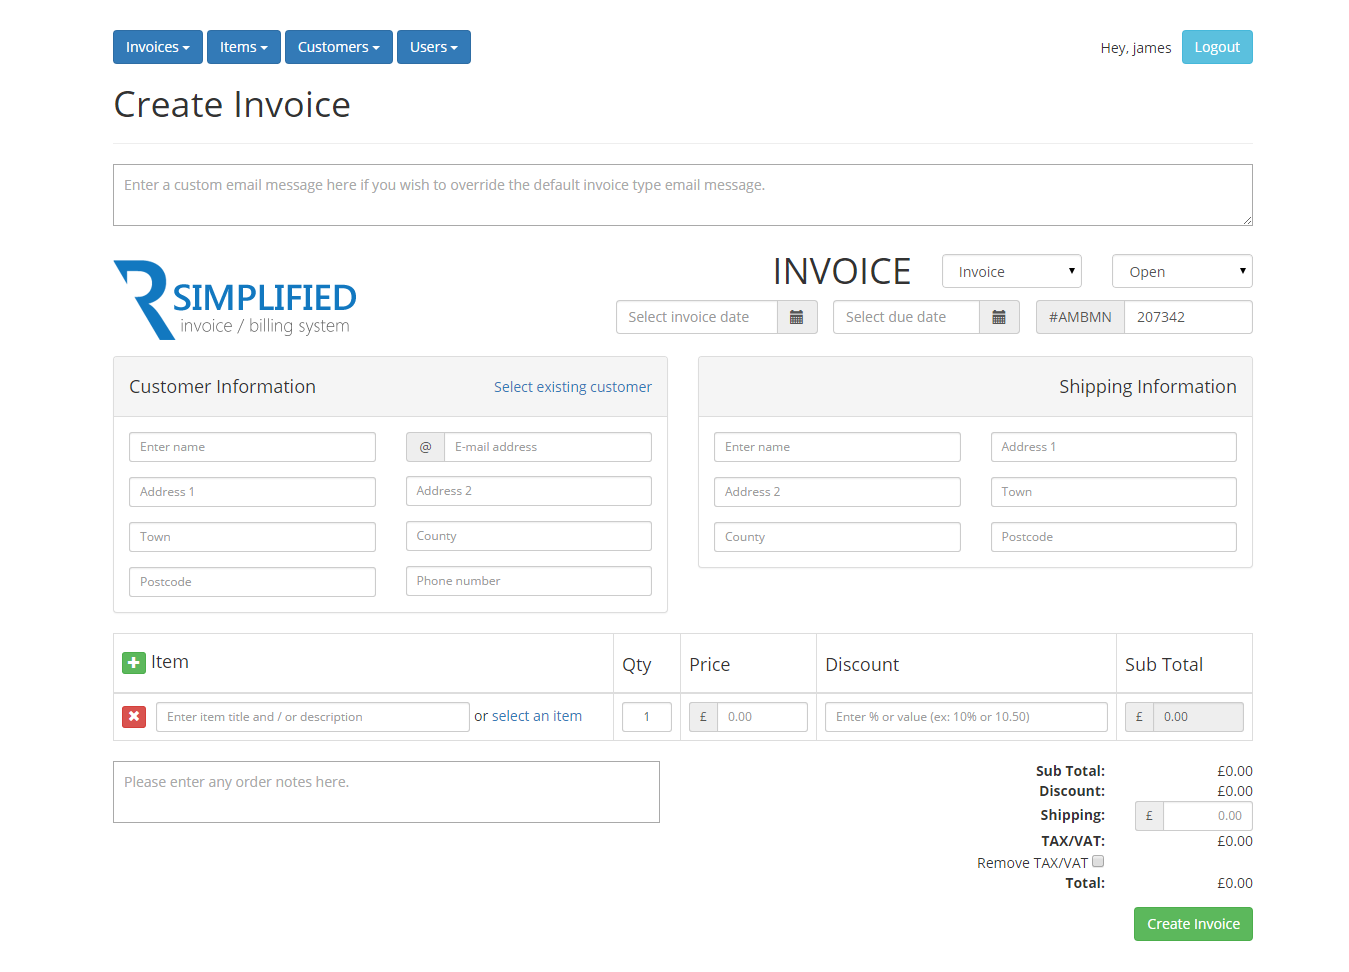 Breakupus  Pleasing Simplified Php Invoice  Billing System By Rebootdigitaluk  With Outstanding  Createinvoicepng  With Cute Cab Receipts Also Federal Tax Receipts In Addition Petty Cash Receipt Template And Pdf Receipt As Well As Receipt For Security Deposit Additionally Duplicate Receipt From Codecanyonnet With Breakupus  Outstanding Simplified Php Invoice  Billing System By Rebootdigitaluk  With Cute  Createinvoicepng  And Pleasing Cab Receipts Also Federal Tax Receipts In Addition Petty Cash Receipt Template From Codecanyonnet